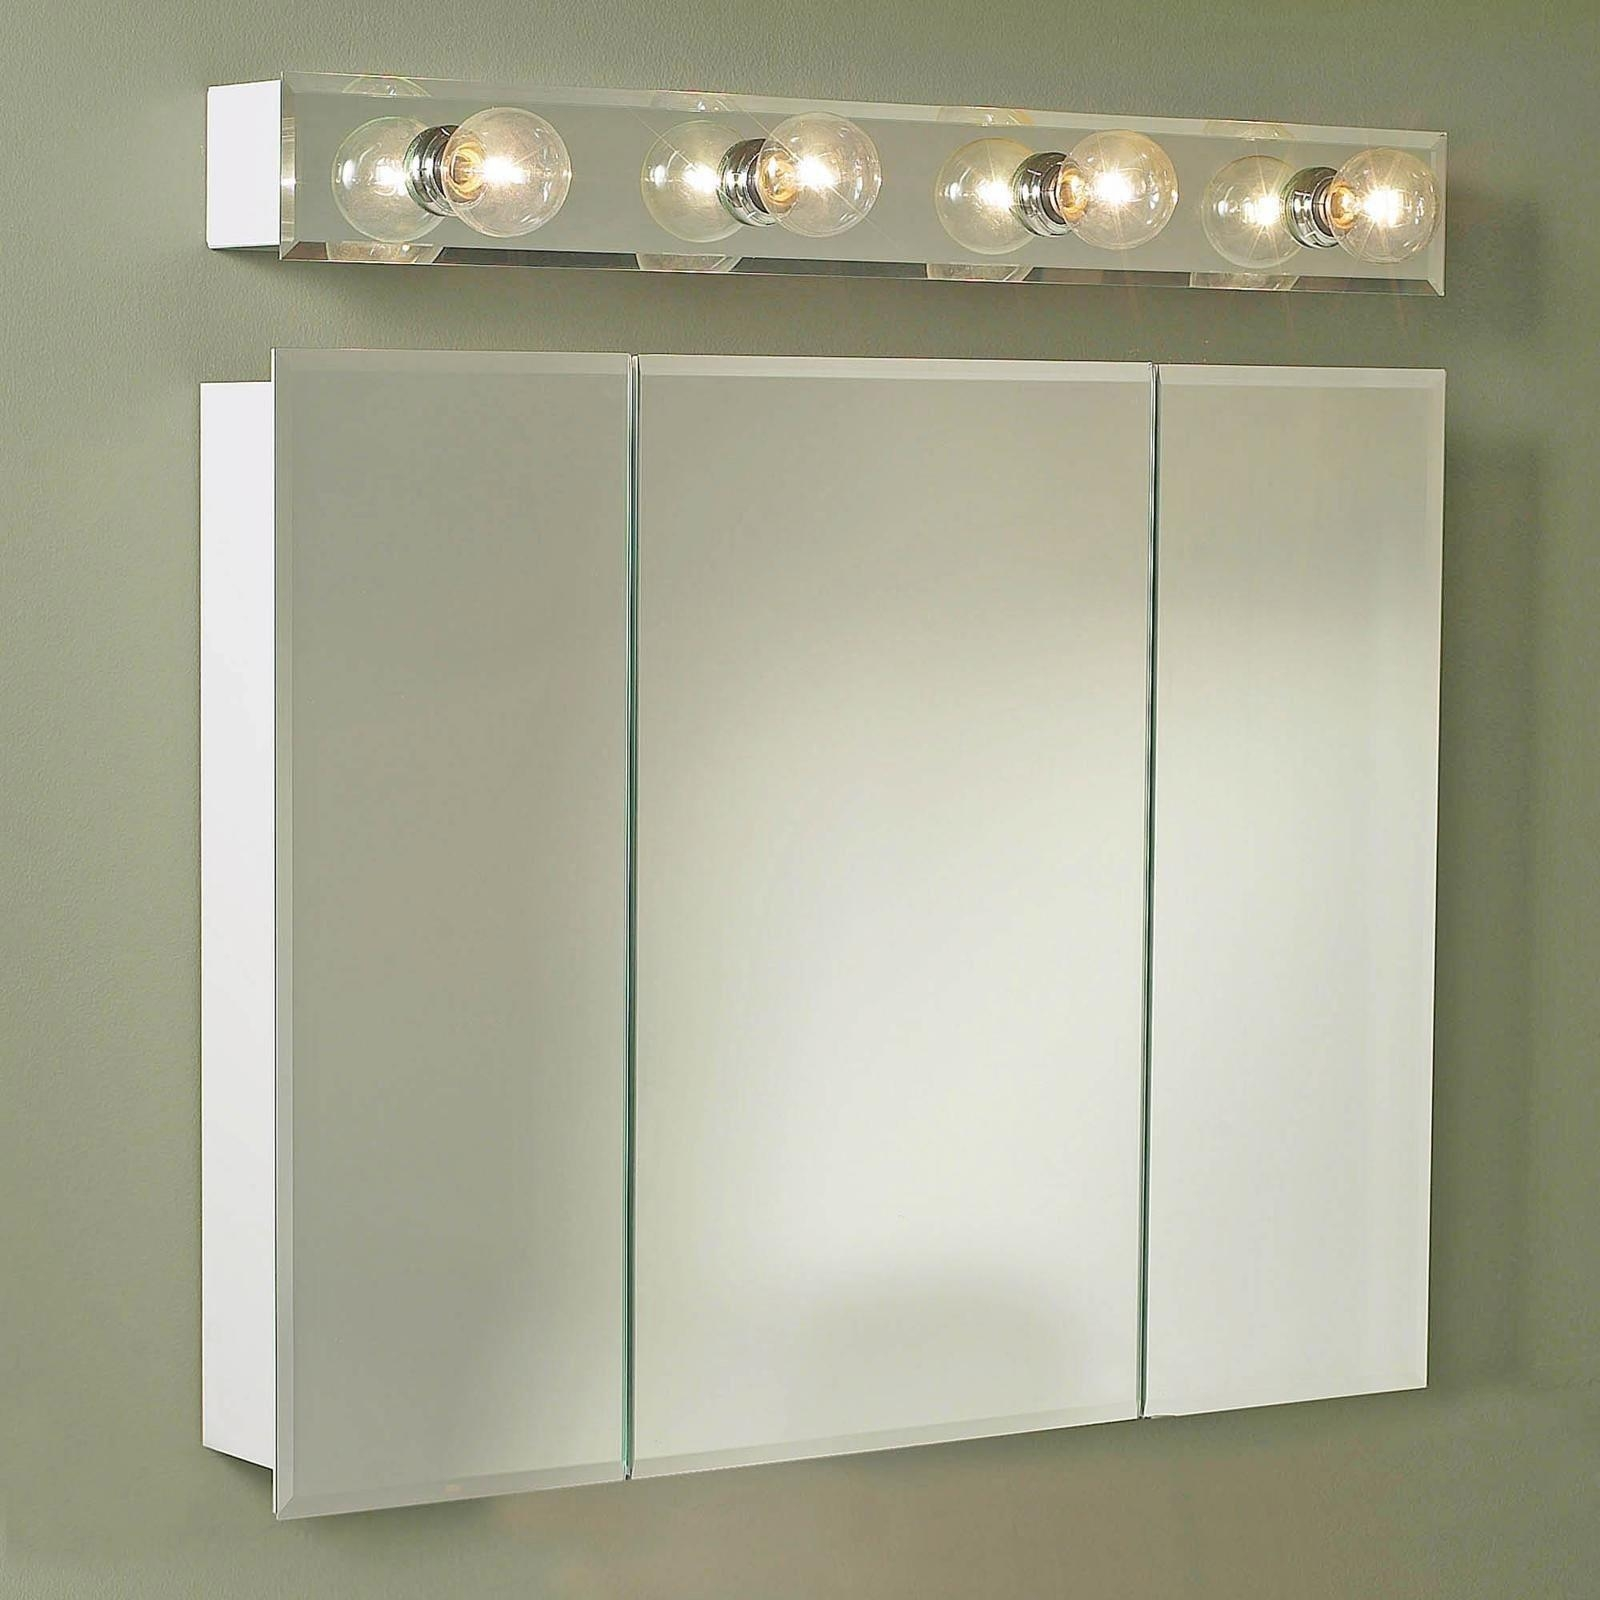 Bathroom Cabinets : New Recessed Medicine Cabinets With Lights Intended For Bathroom Medicine Cabinets With Mirrors (Image 6 of 20)